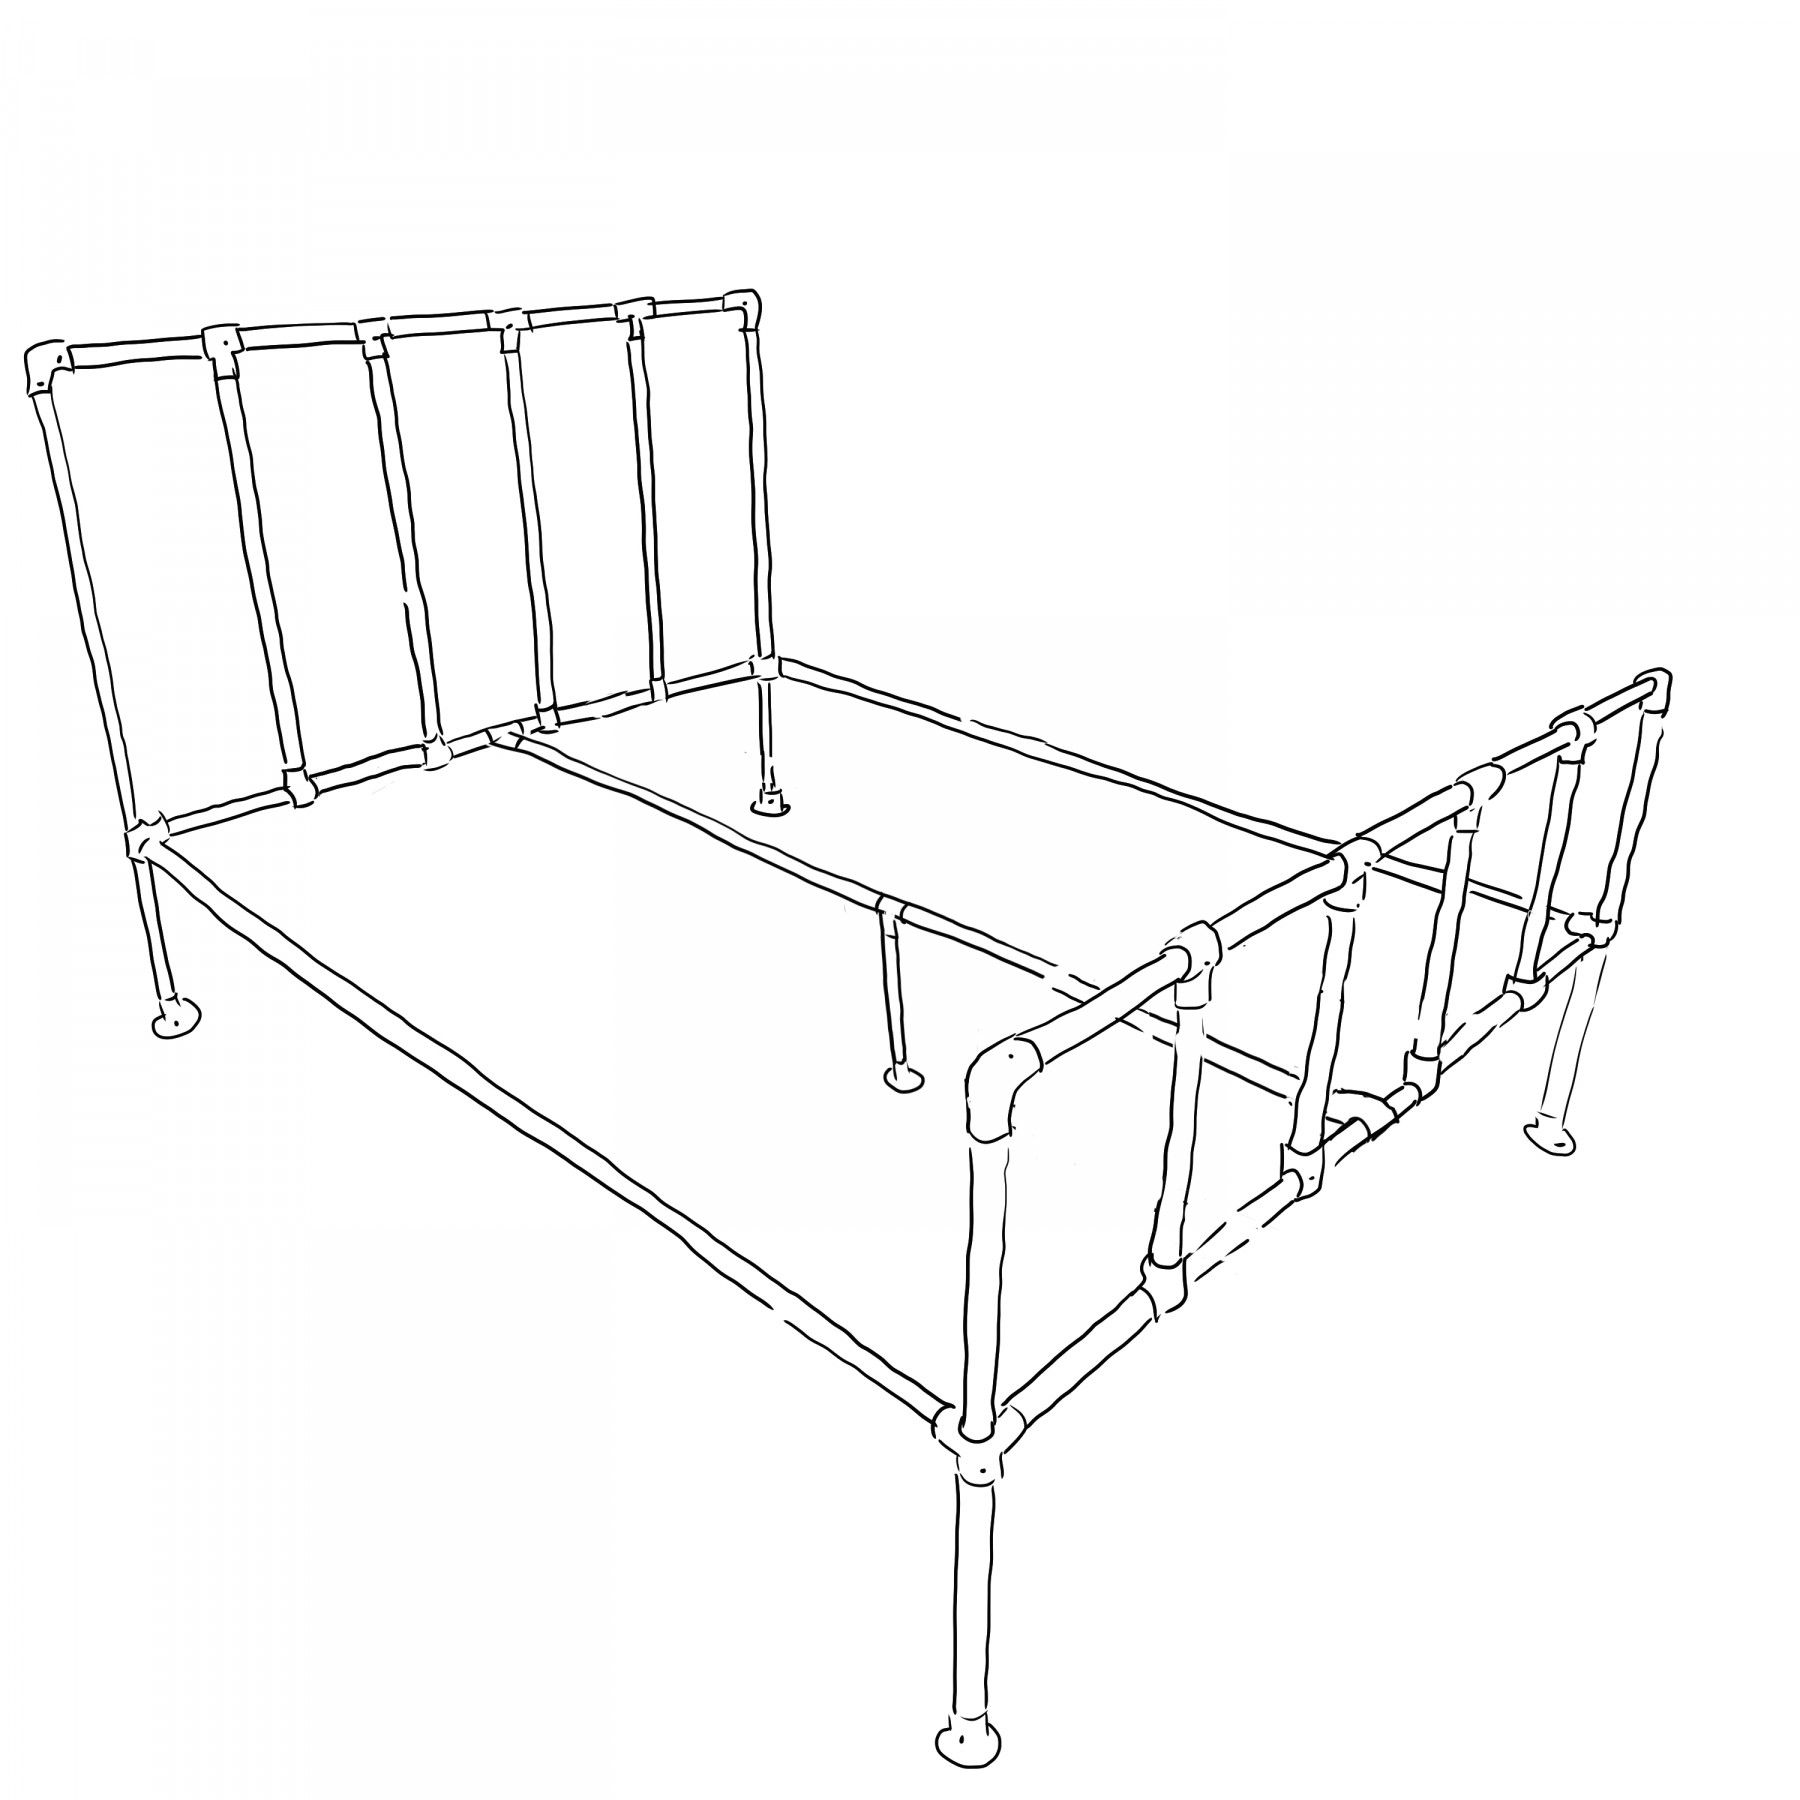 Camden Industrial Bed Frame Kit Small Double Simplified